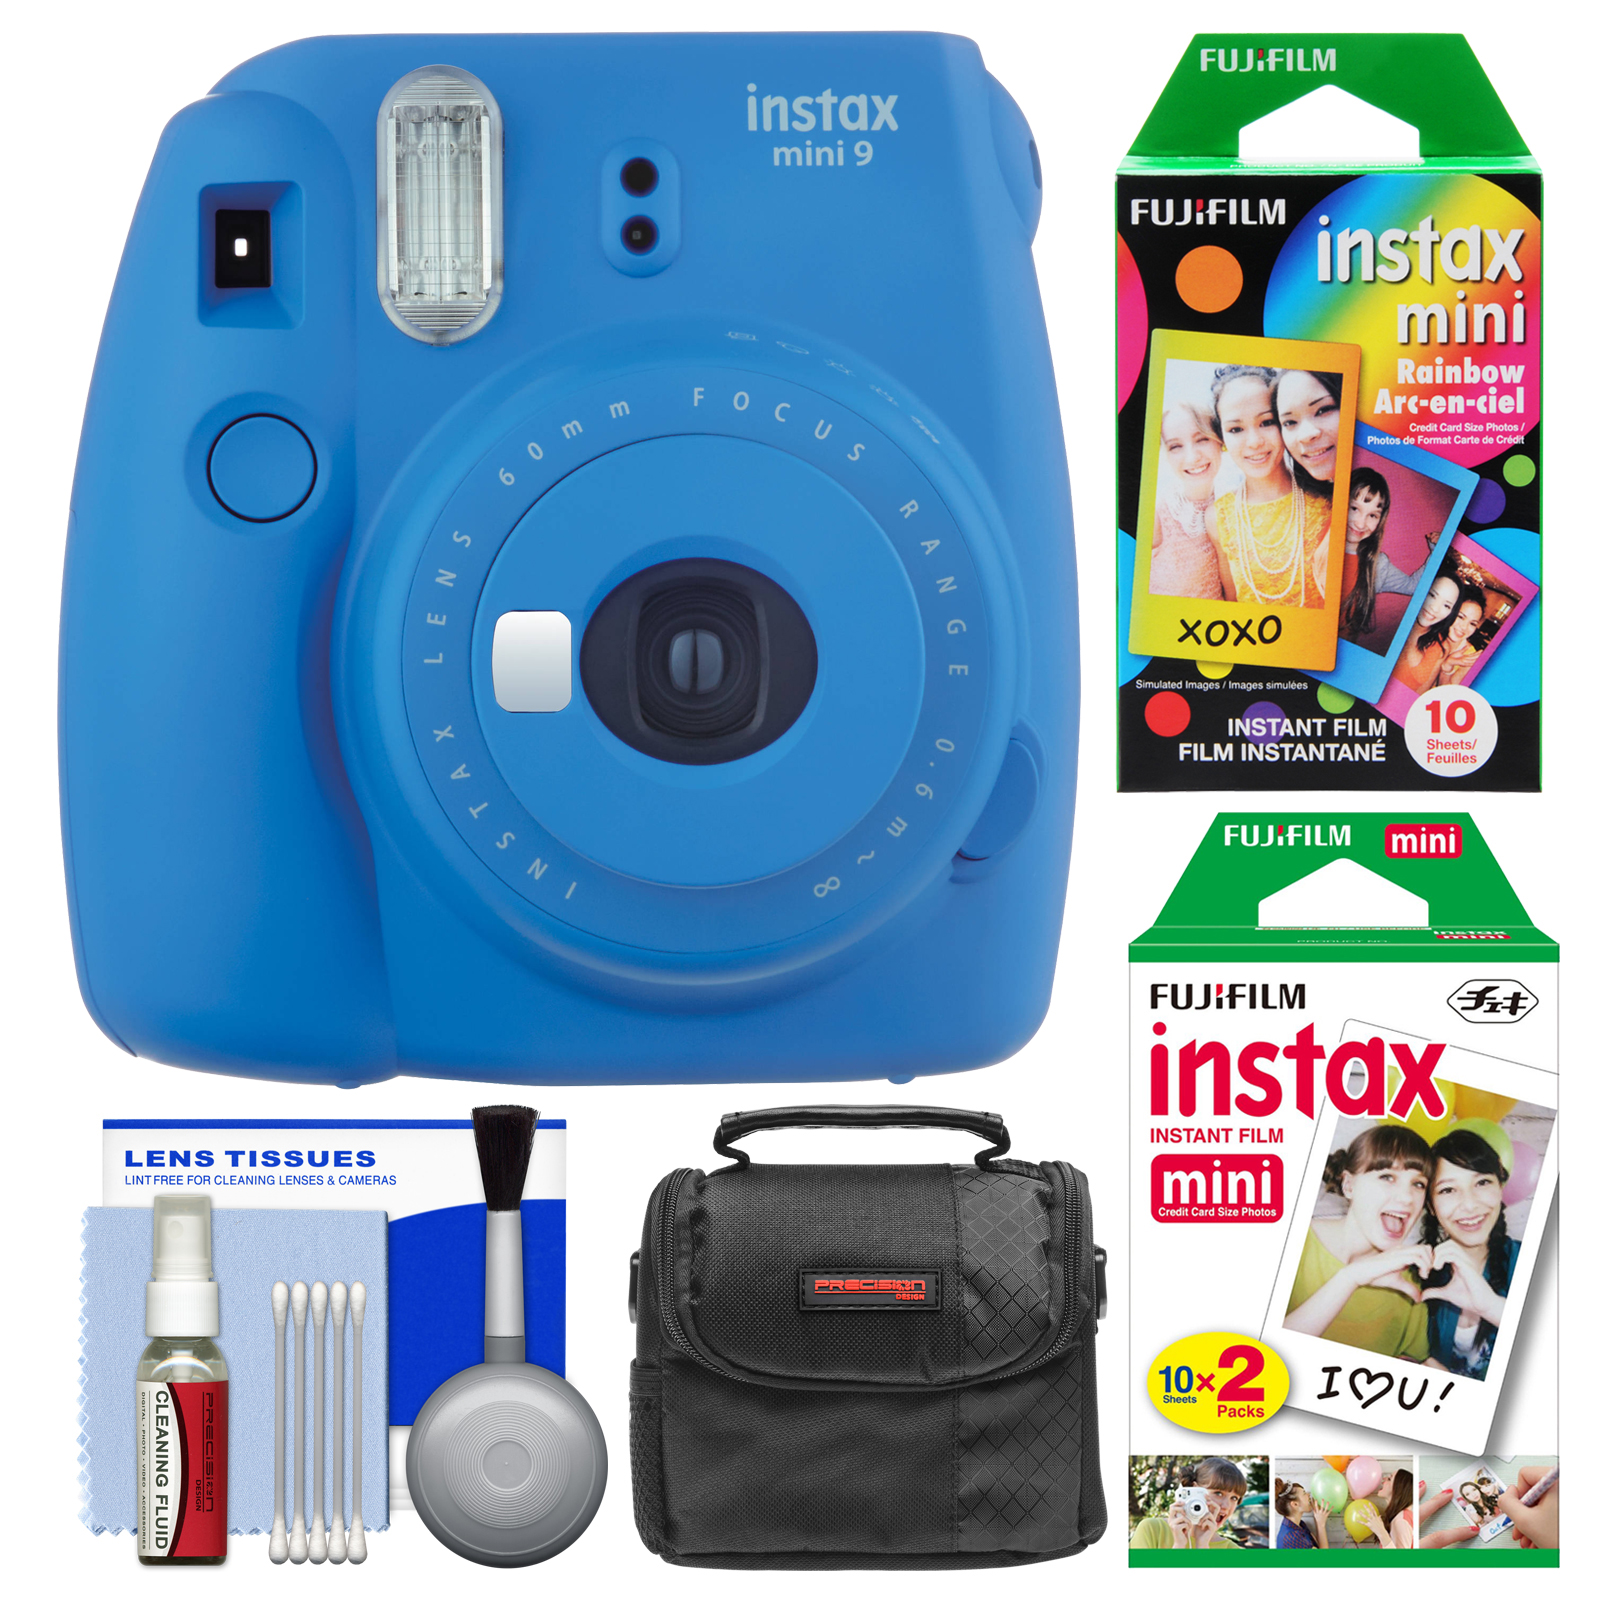 Fujifilm Instax Mini 9 Instant Film Camera (Smokey White) with 20 Twin & 10 Rainbow Prints + Case + Cleaning Kit